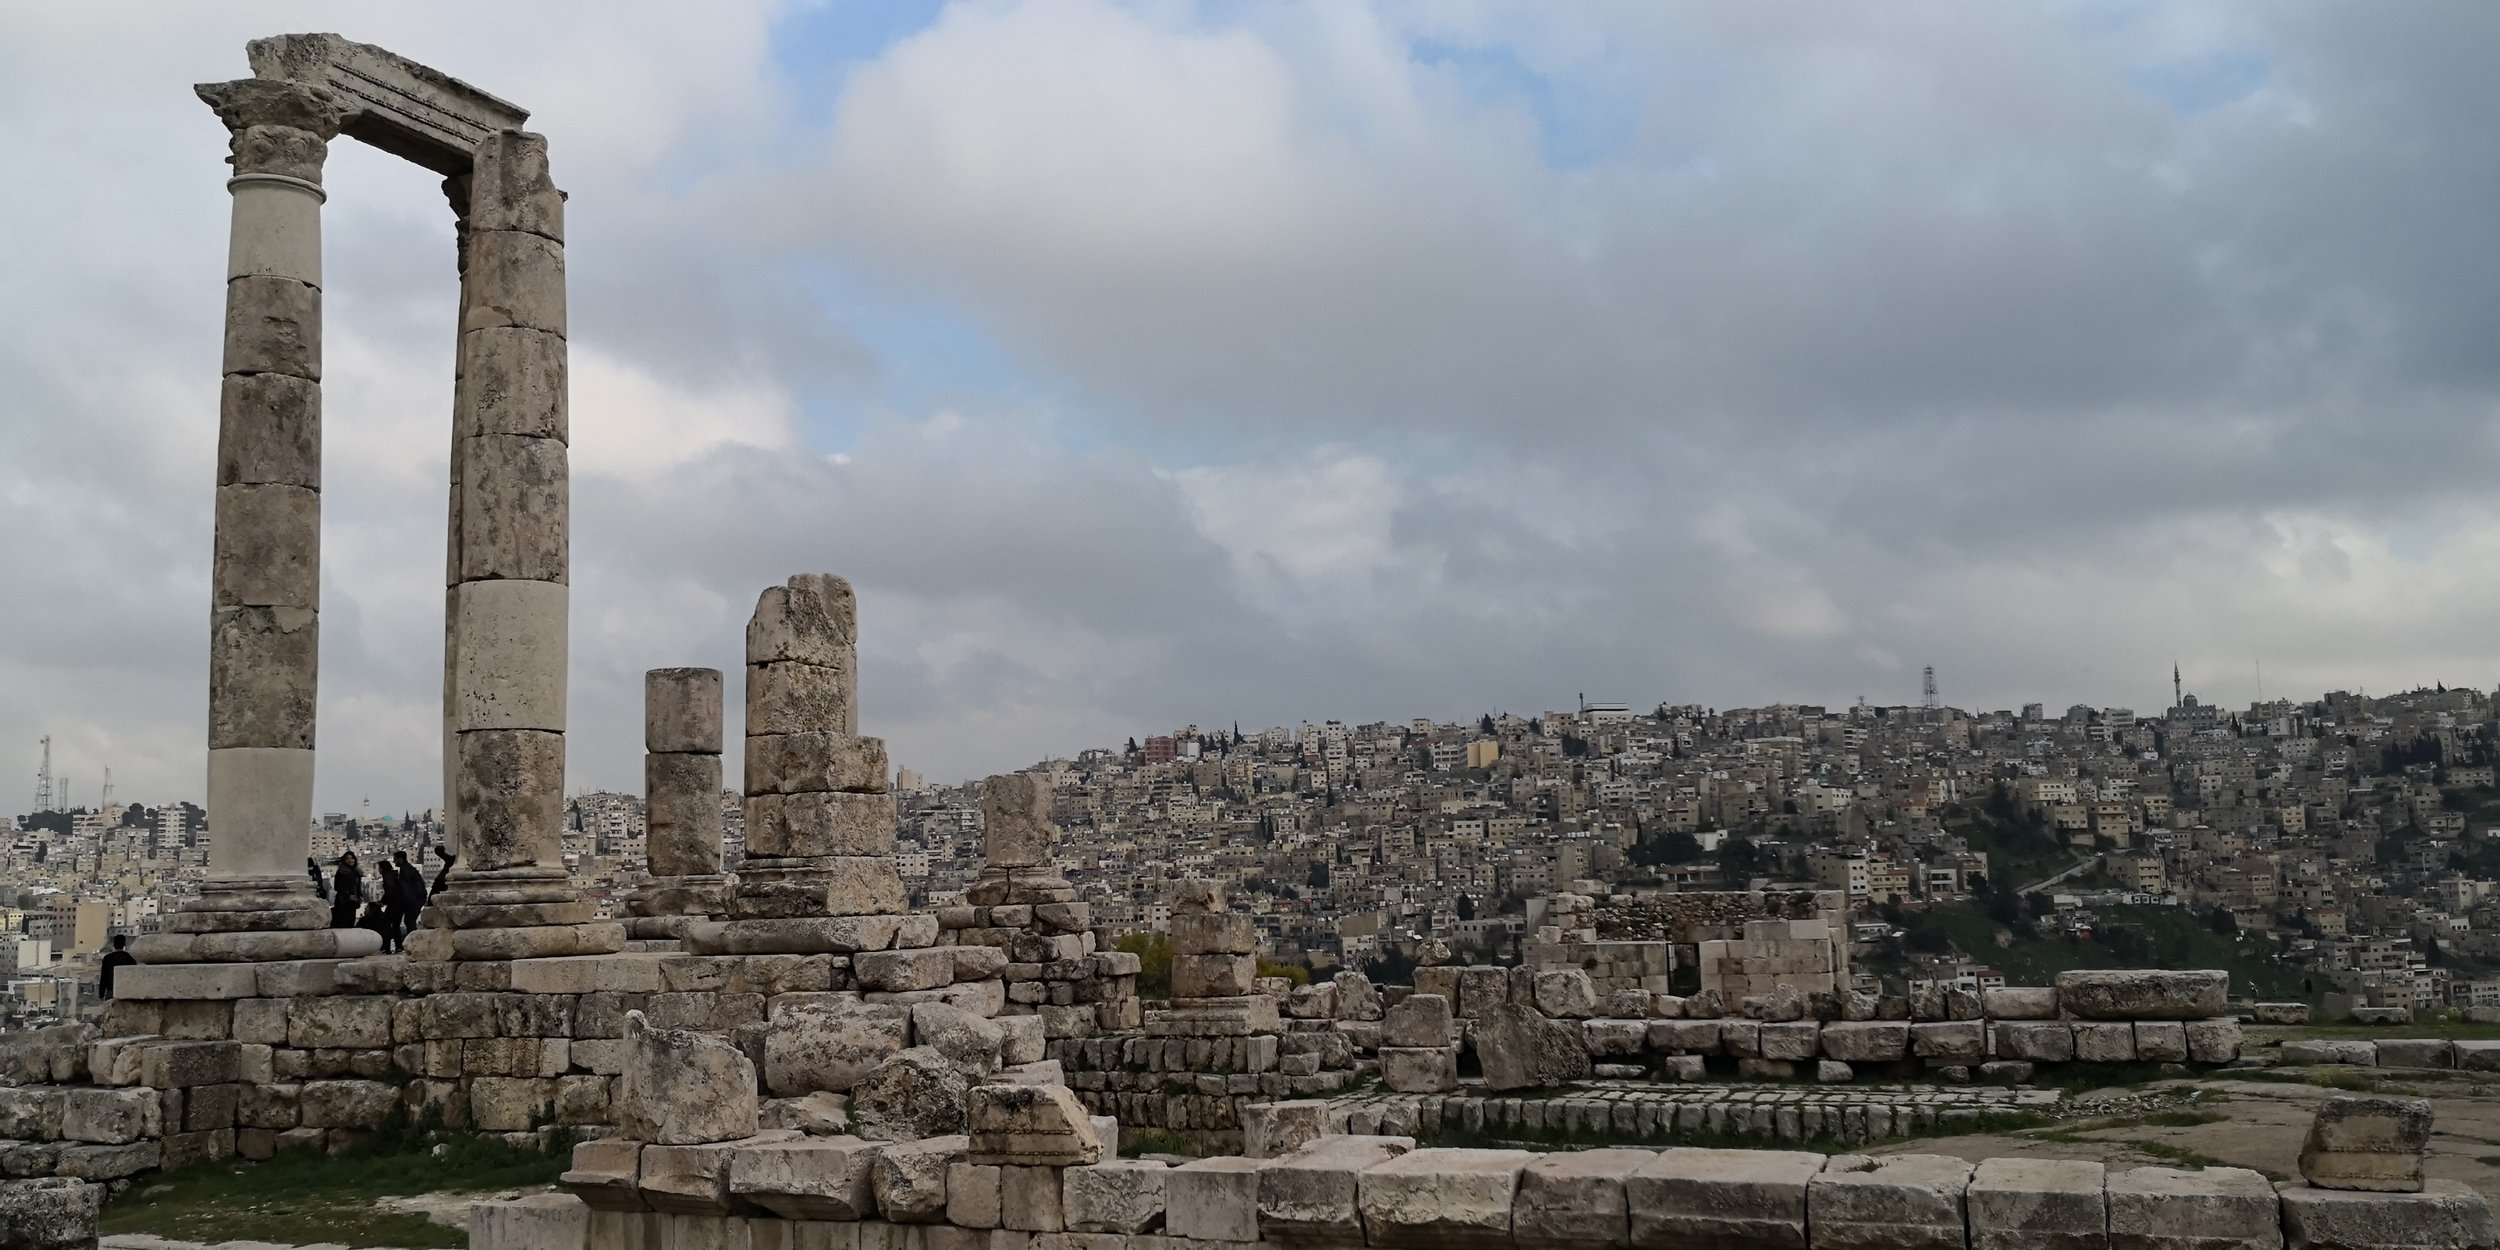 The Amman Citadel.  Photo taken by Davric, distributed under under  CC BY-SA 4.0  license.